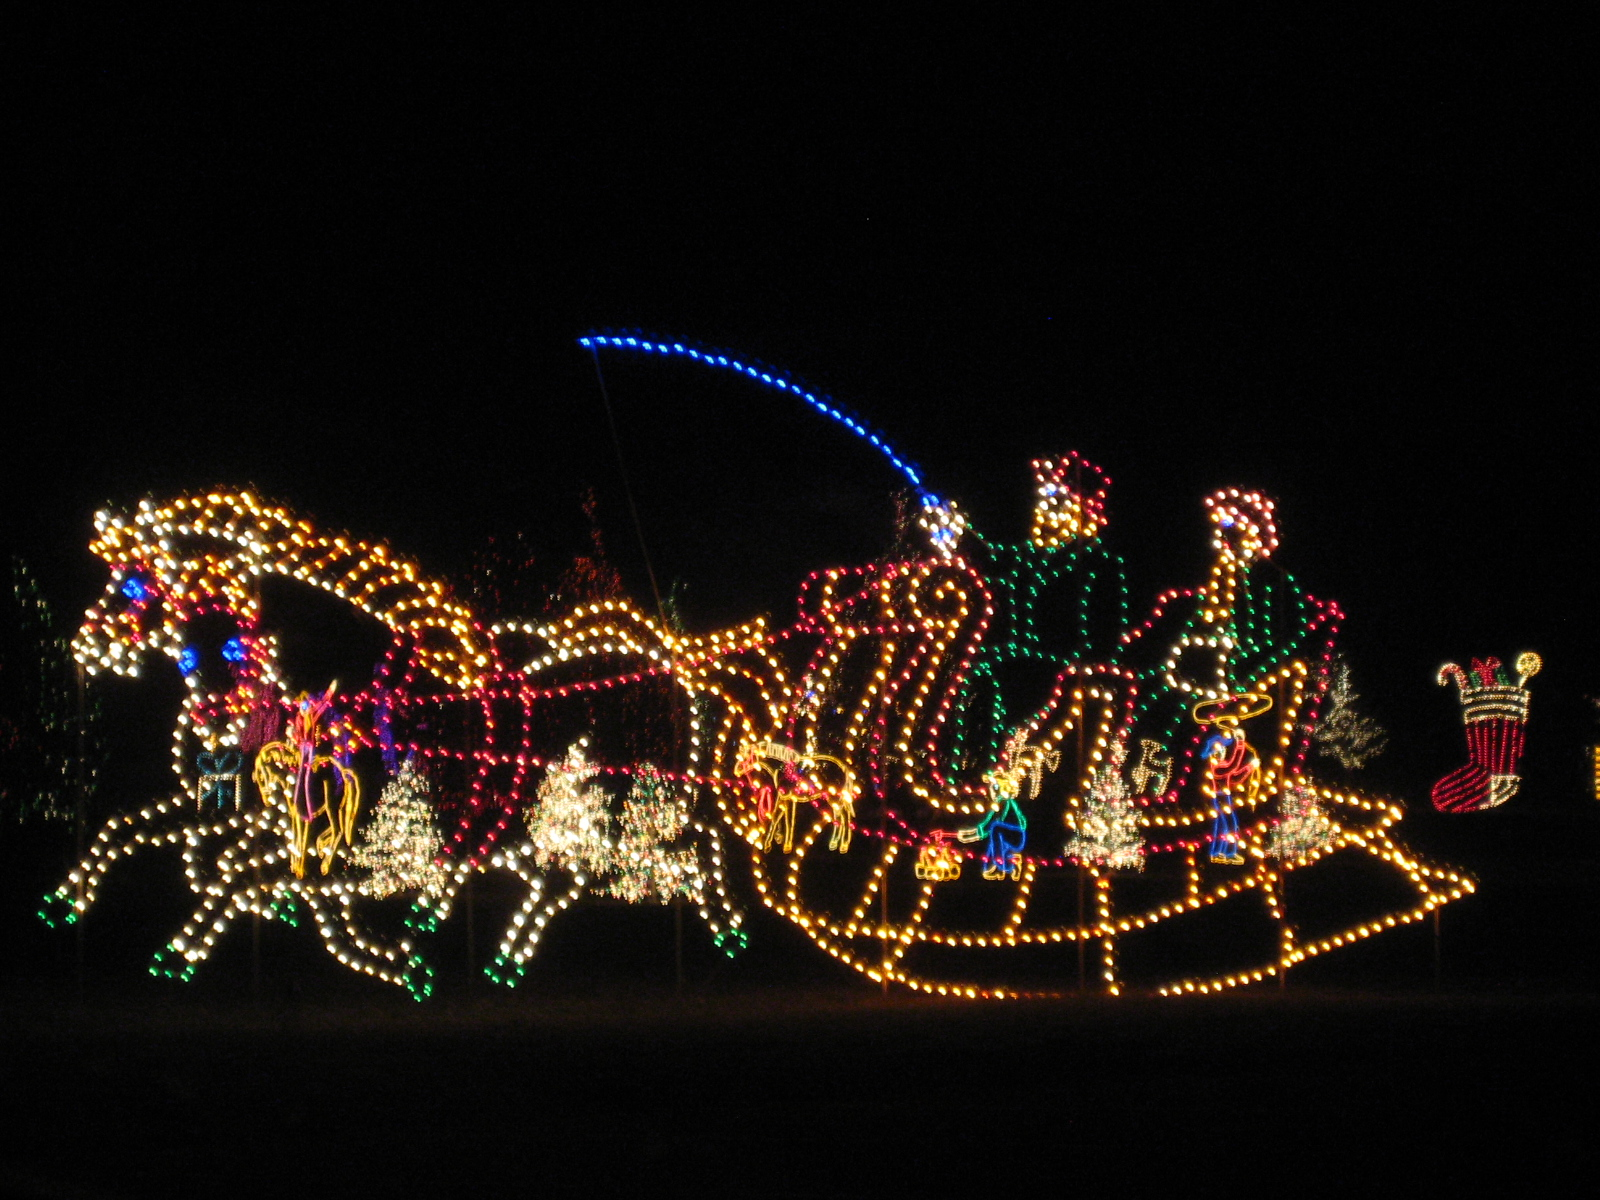 Spanish Fork Christmas Lights